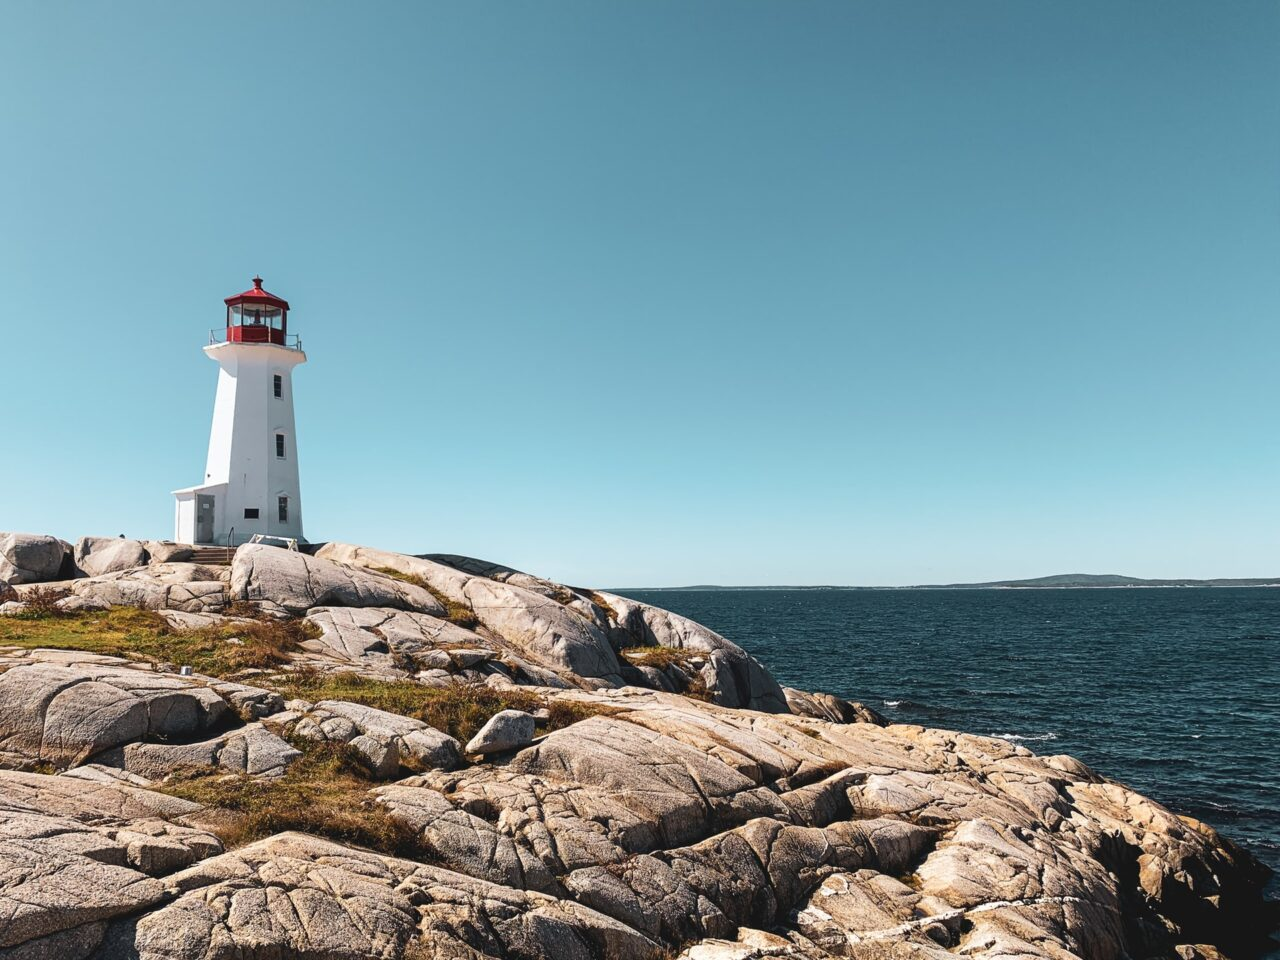 Travelers Guide To Canada Tourism: Know 8 Important Things 1